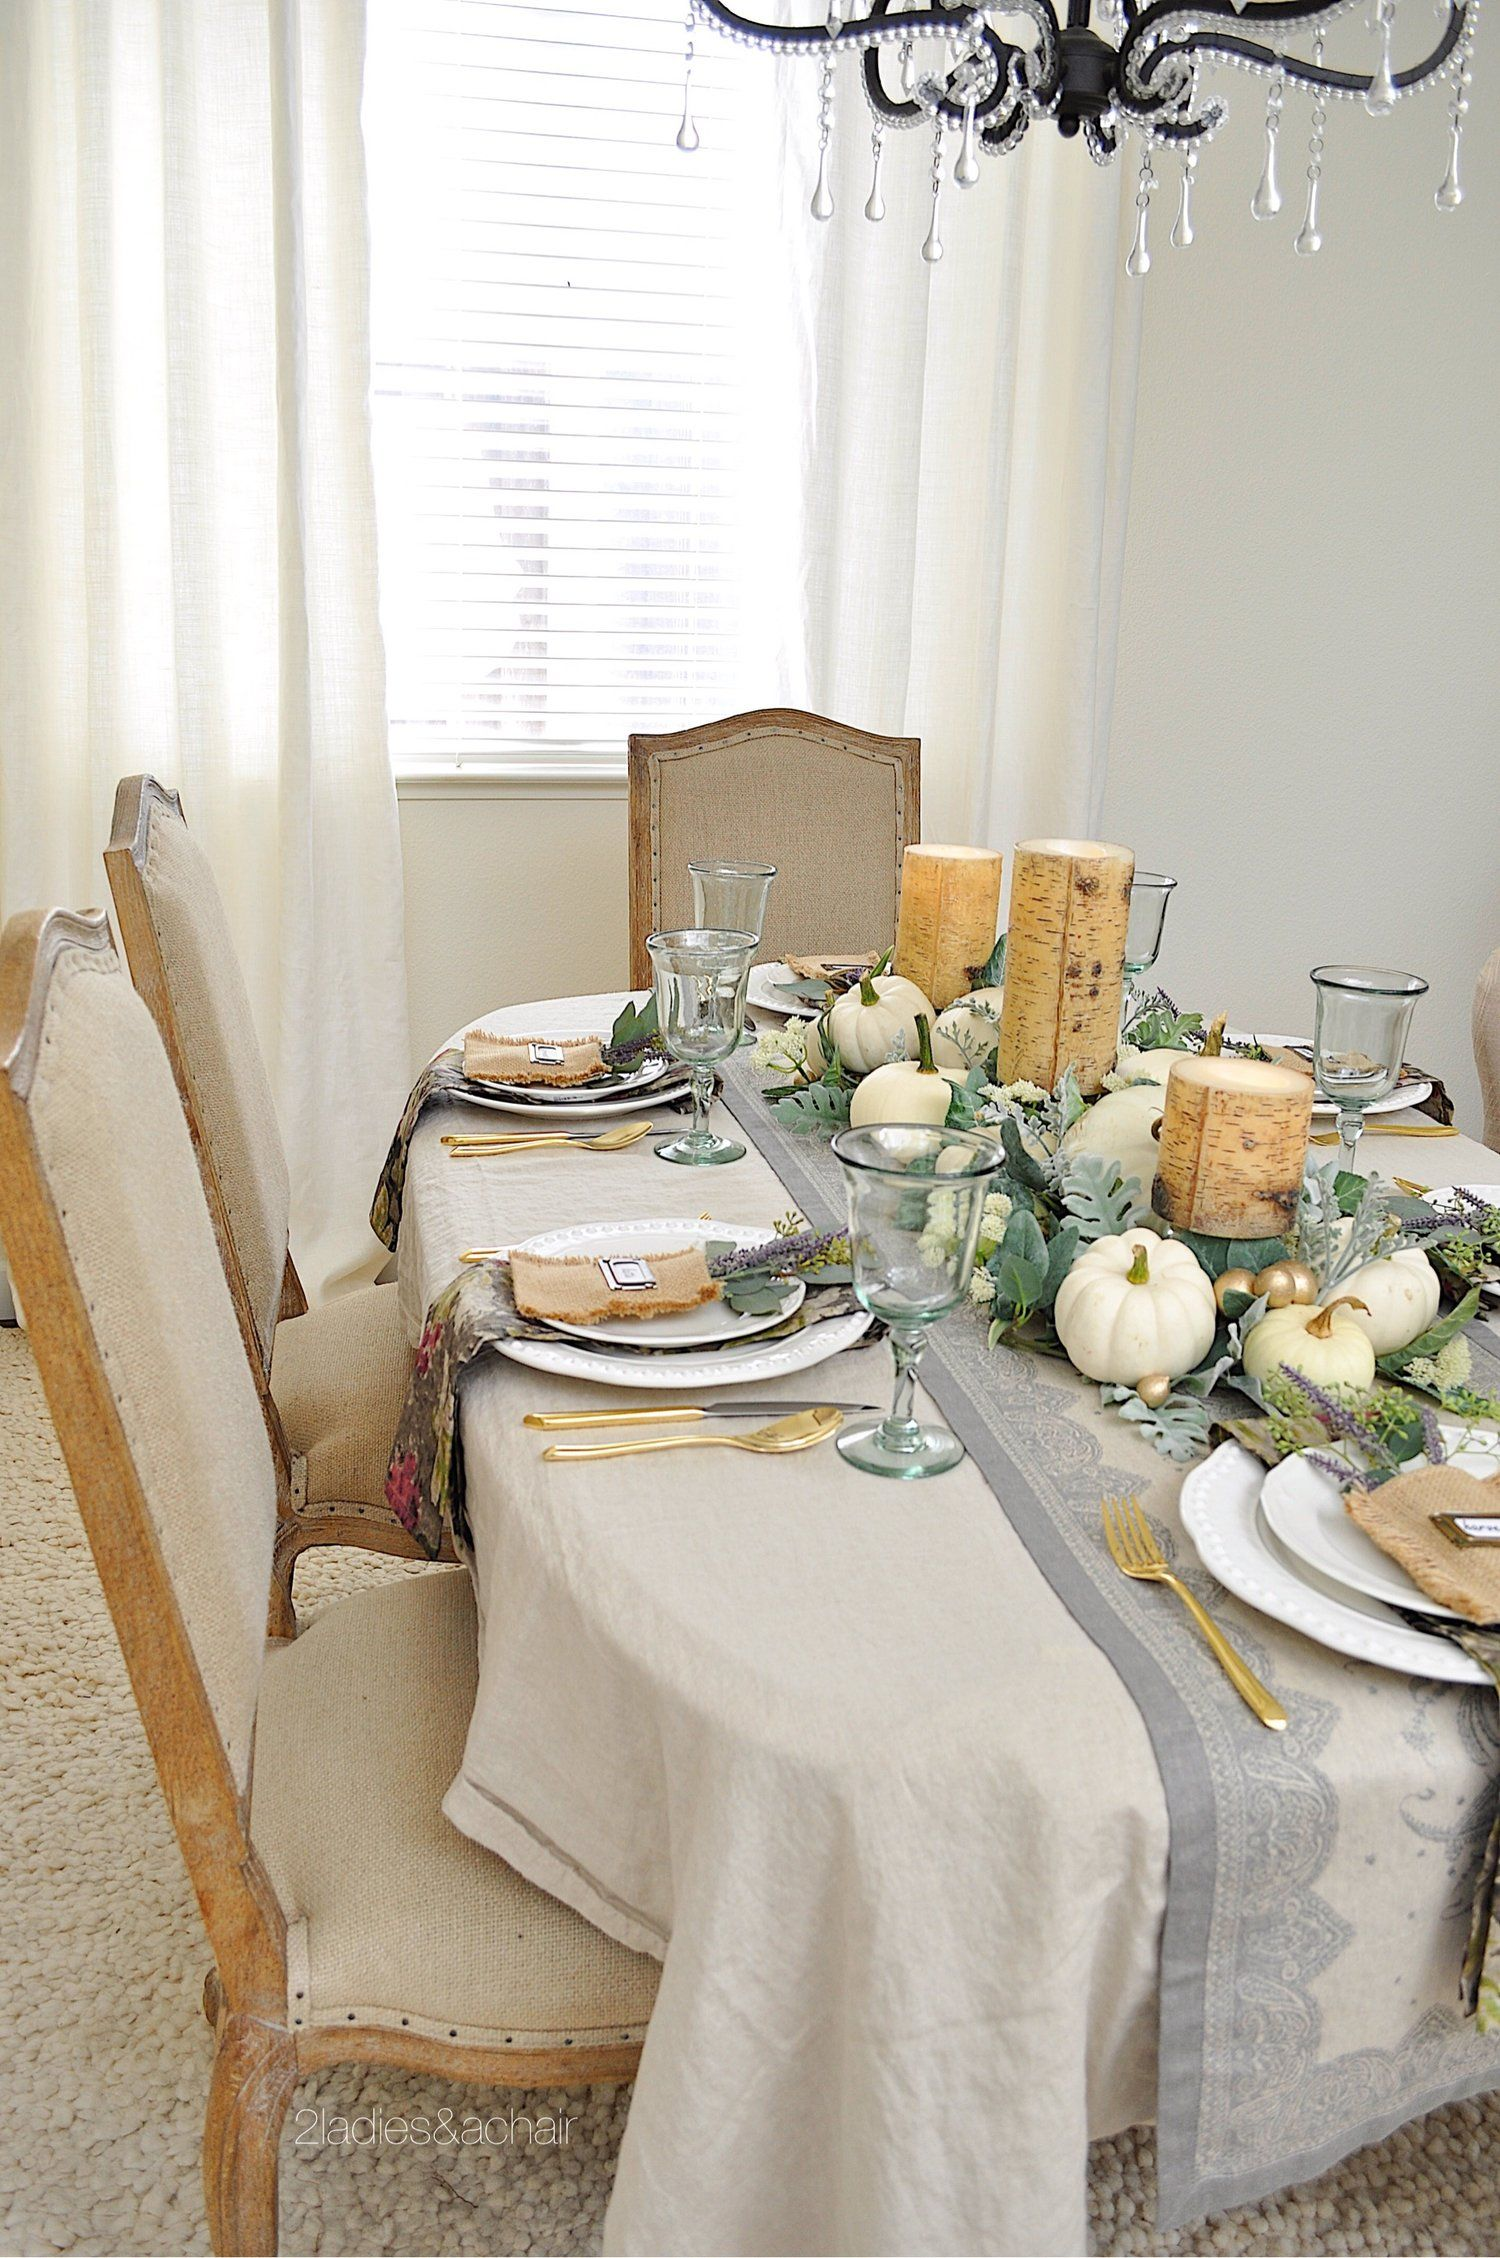 A Simple Beautiful Way To Decorate Your Dining Table For Fall